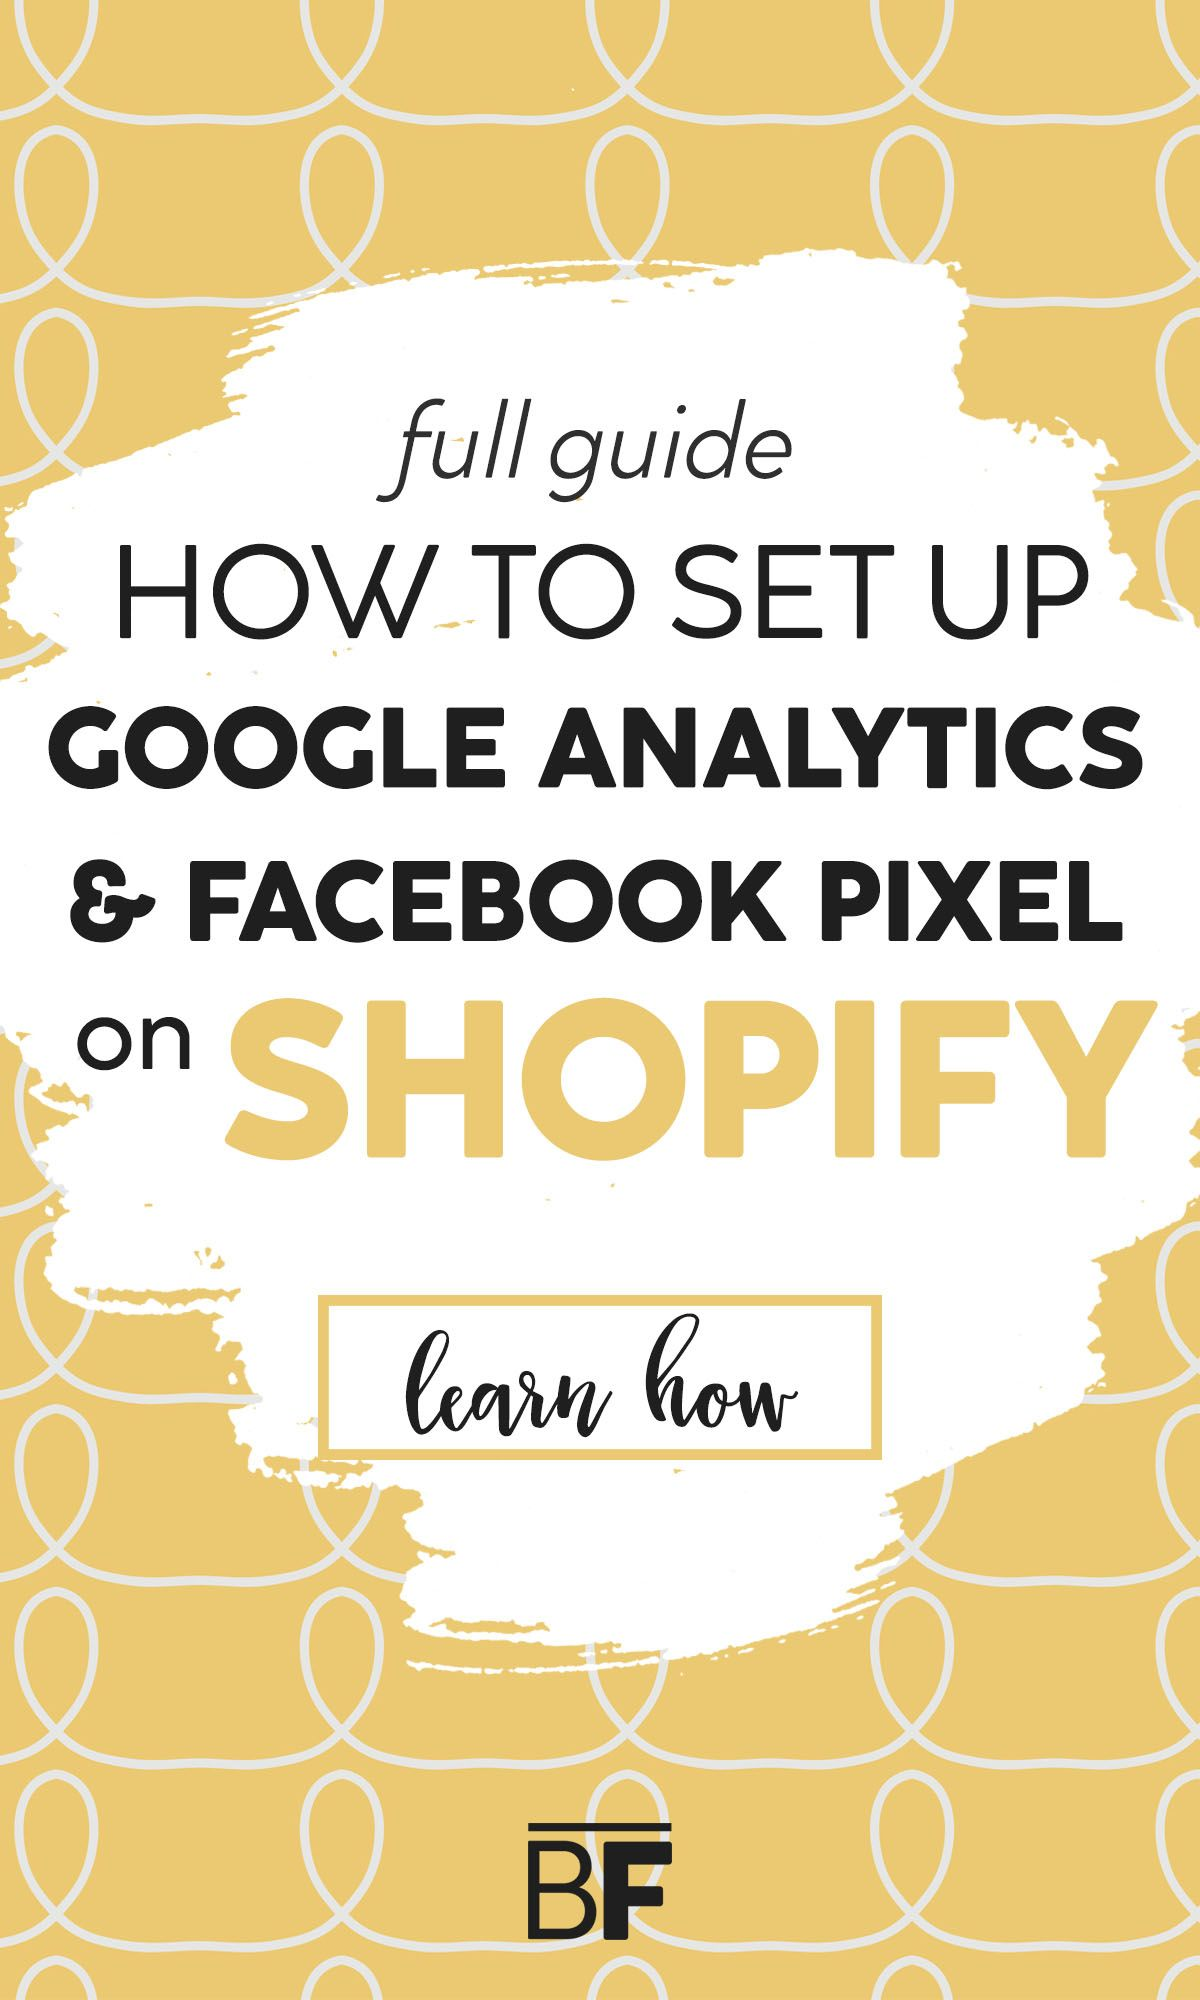 How to Set Up Google Analytics & Facebook Pixel on Shopify